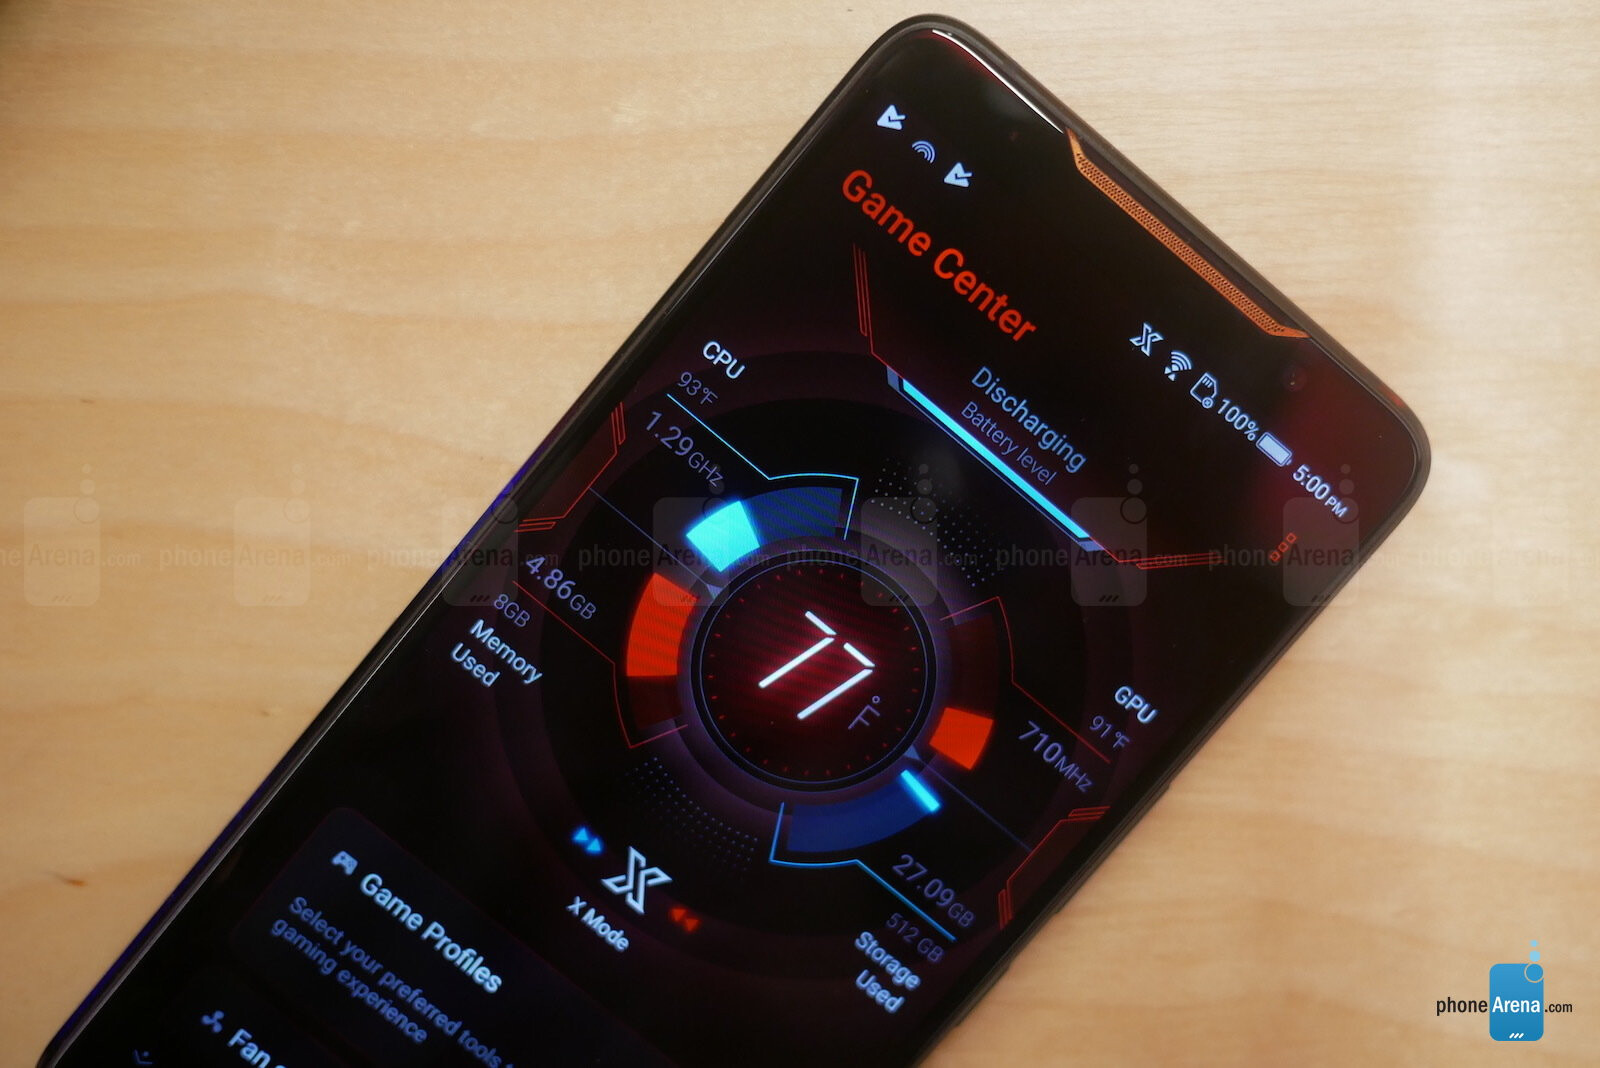 Asus ROG Phone and Accessories Hands-On: More Hardware, More Gaming | PhoneArena reviews